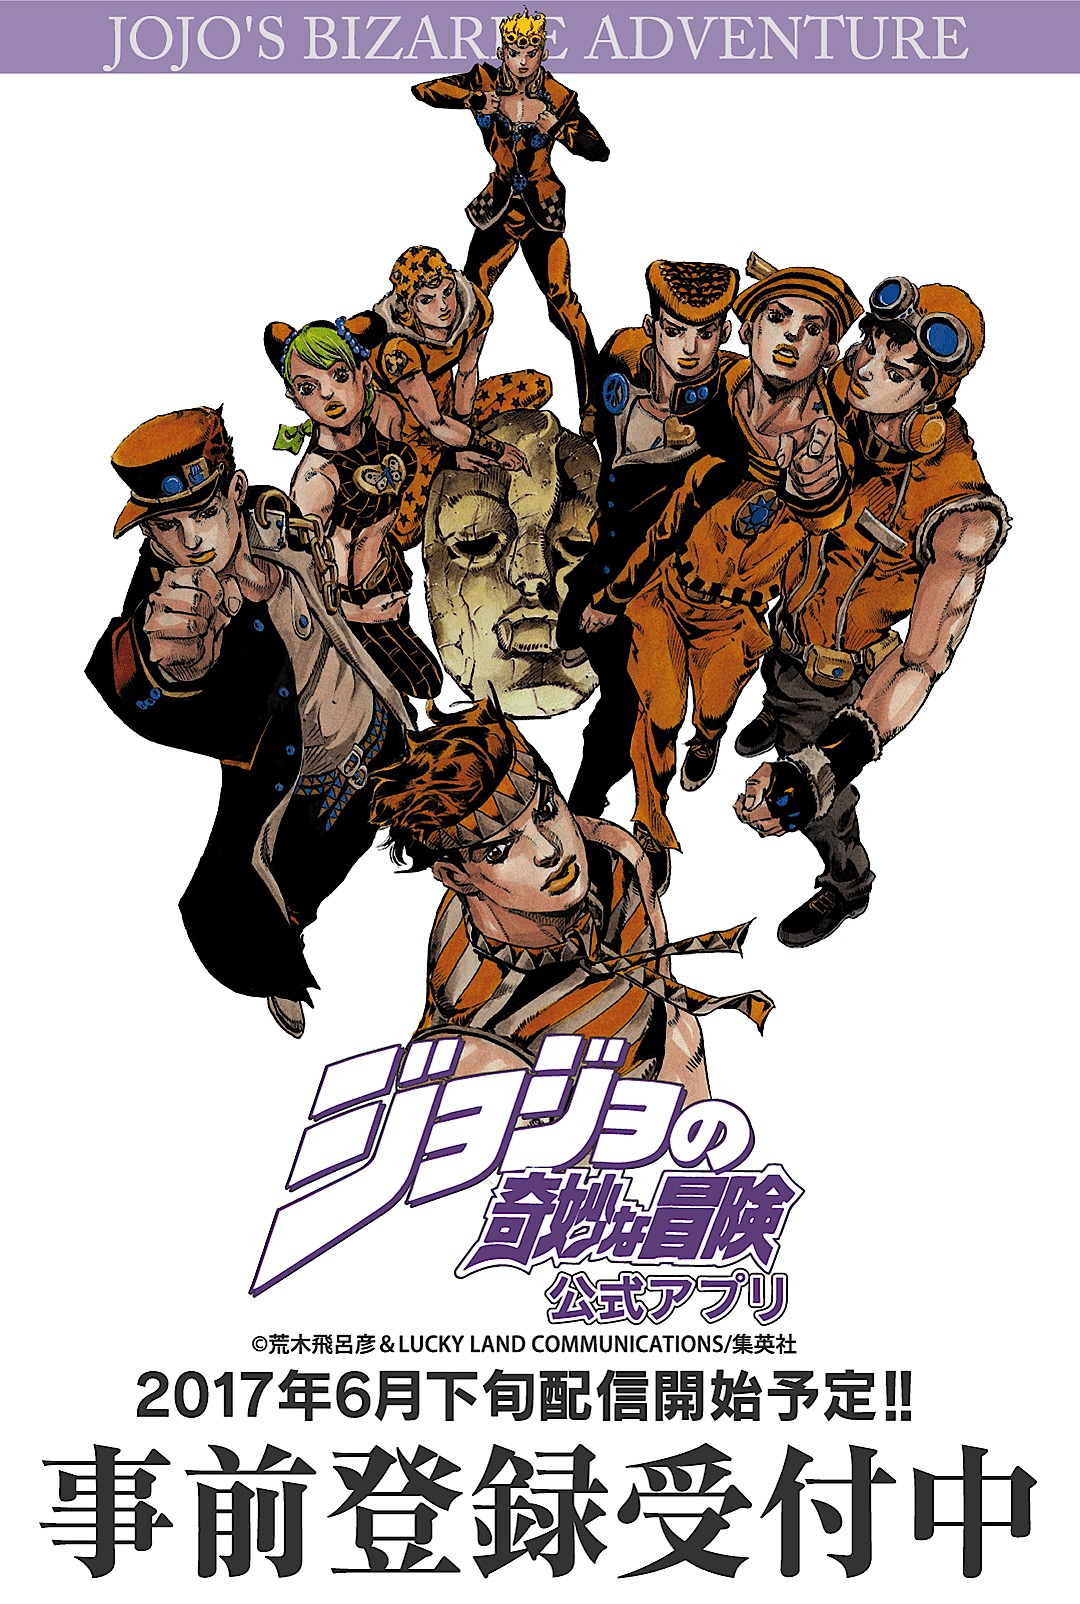 jojoapp01